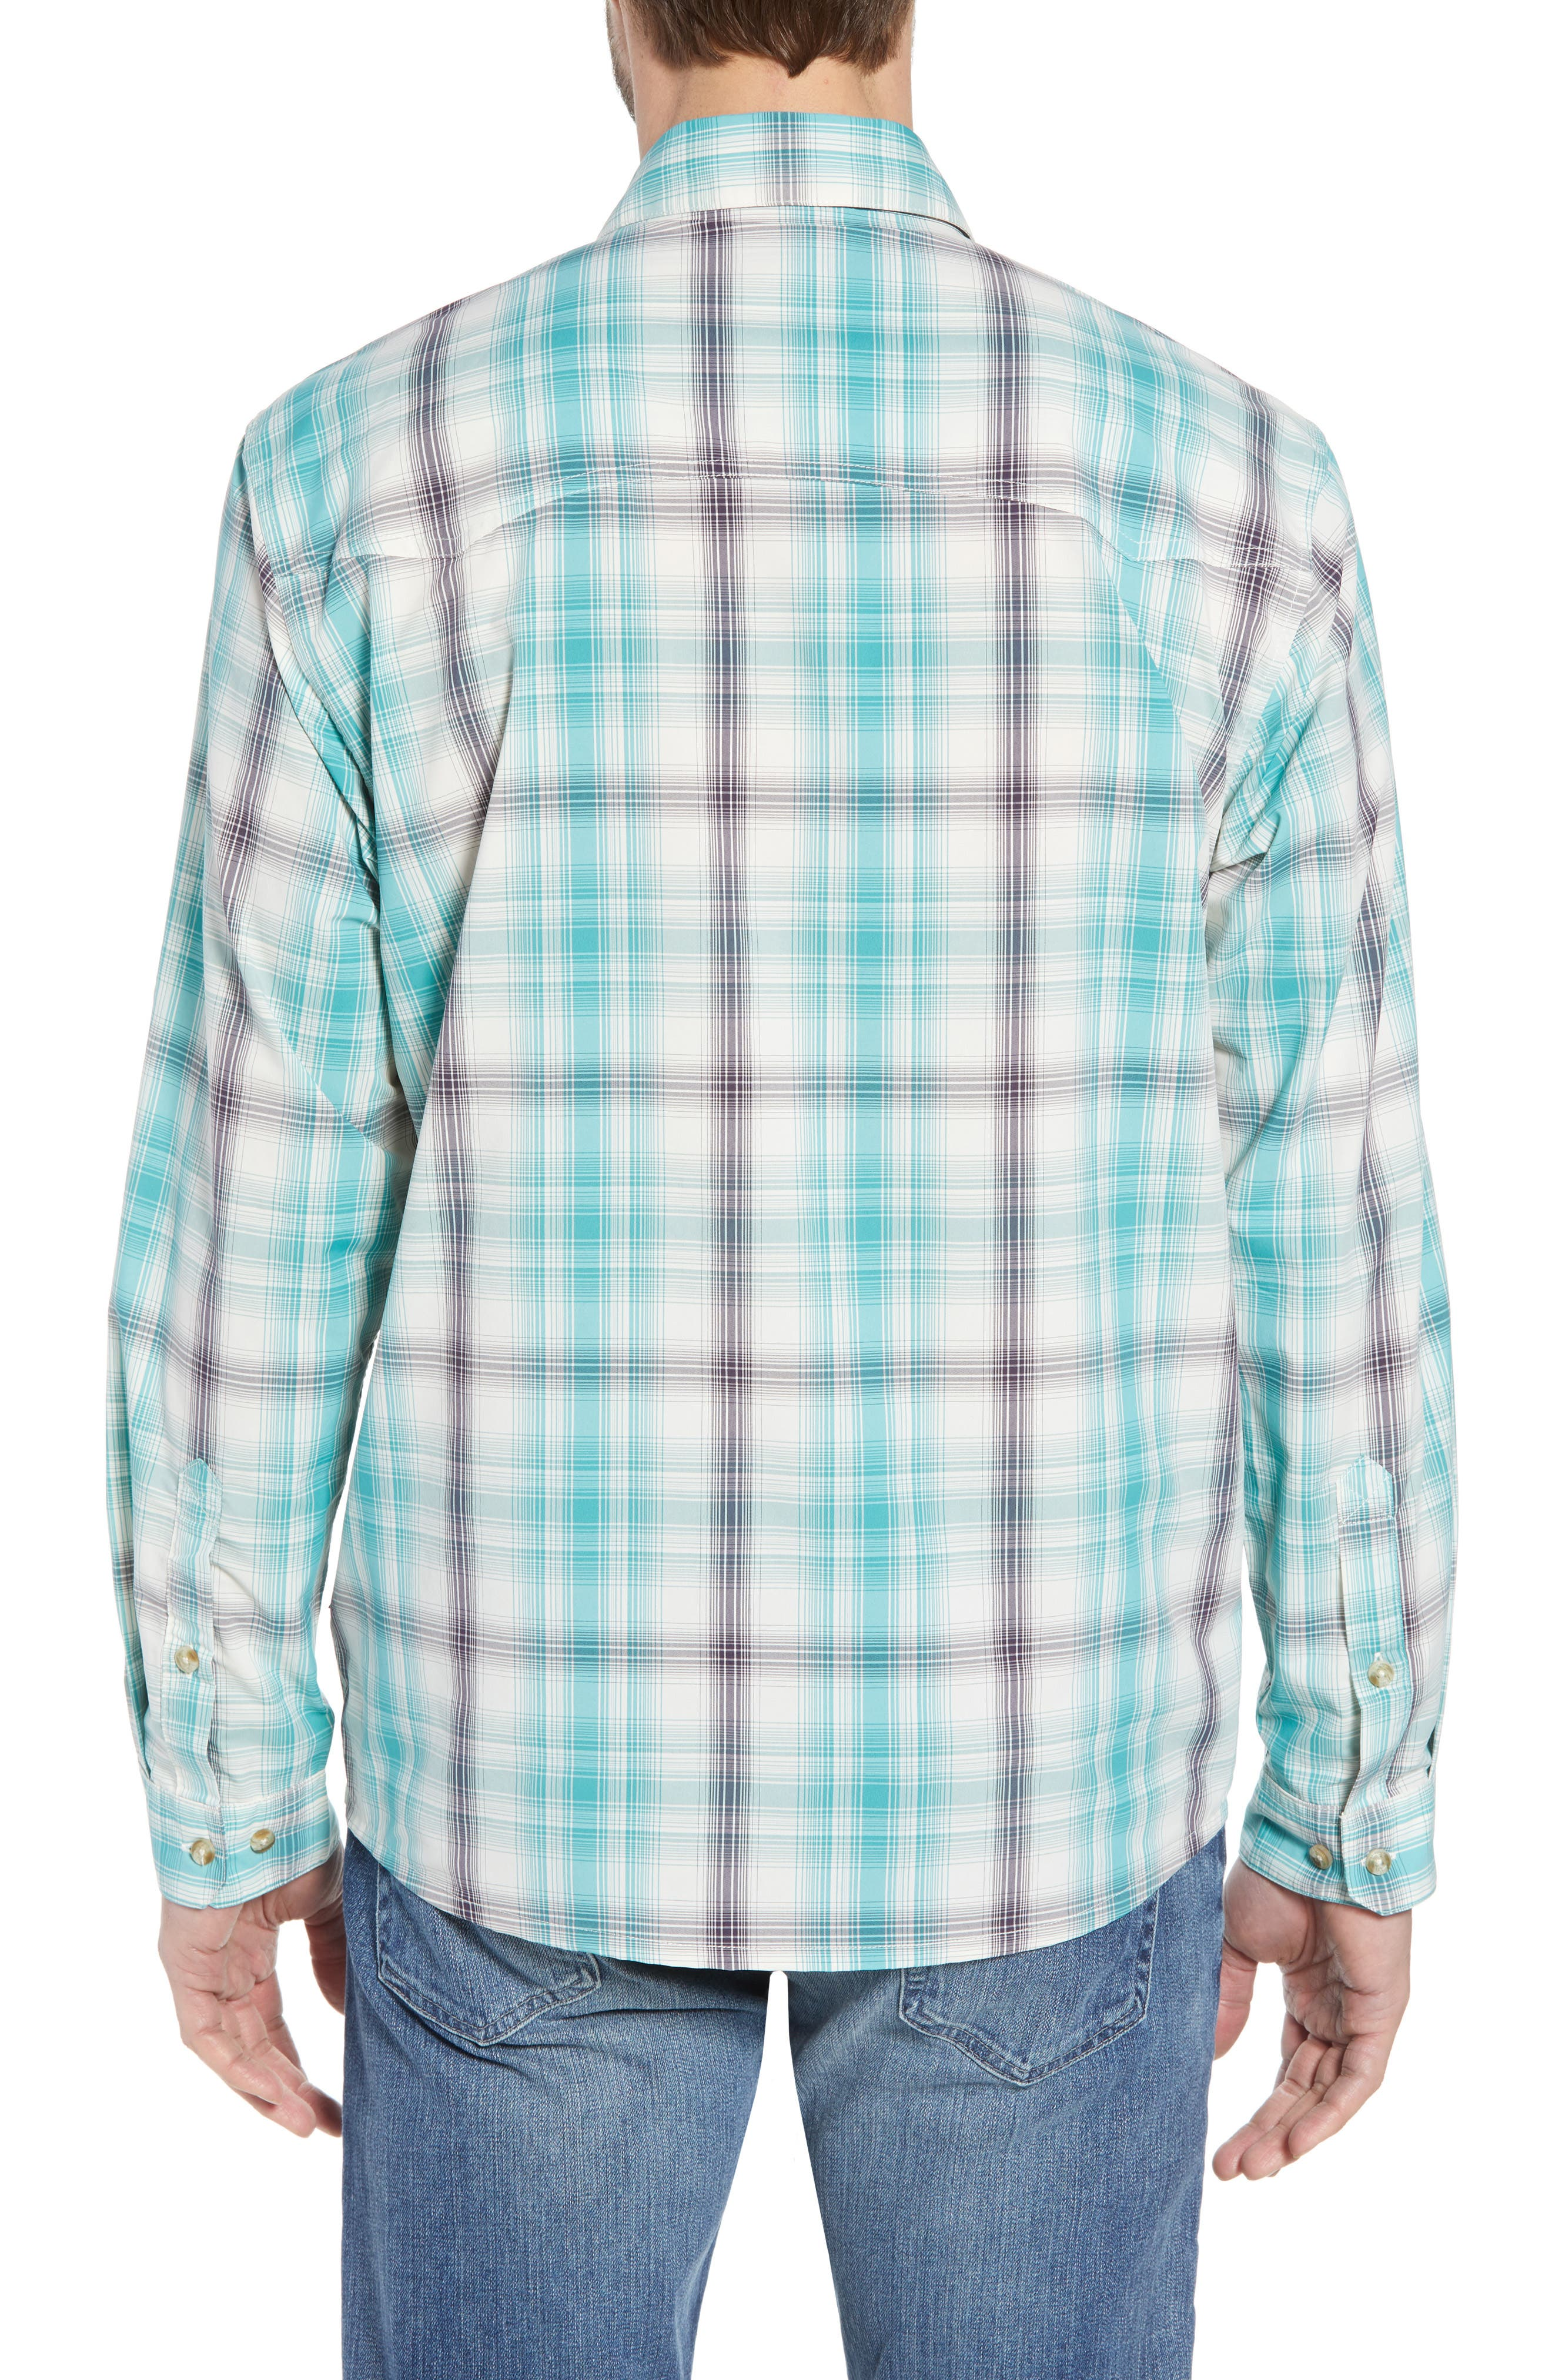 Regular Fit Plaid Sport Shirt,                             Alternate thumbnail 3, color,                             King Swing/ Piton Purple